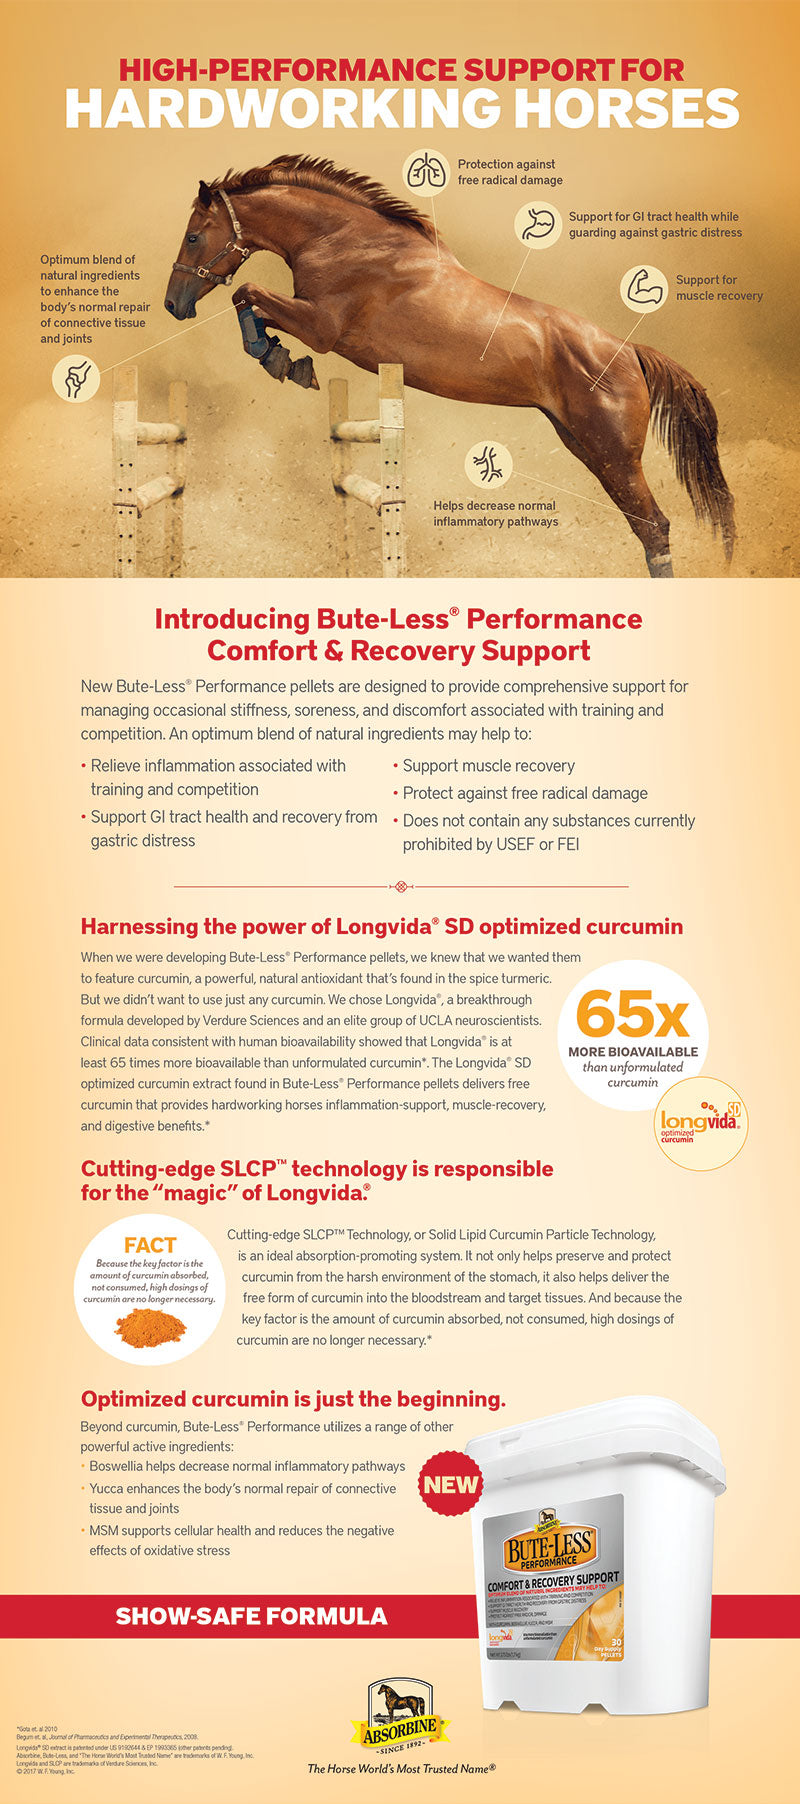 Bute-Less Performance Optimized Curcumin Pelleted Supplement High-Performance Support for Hardworking Horses